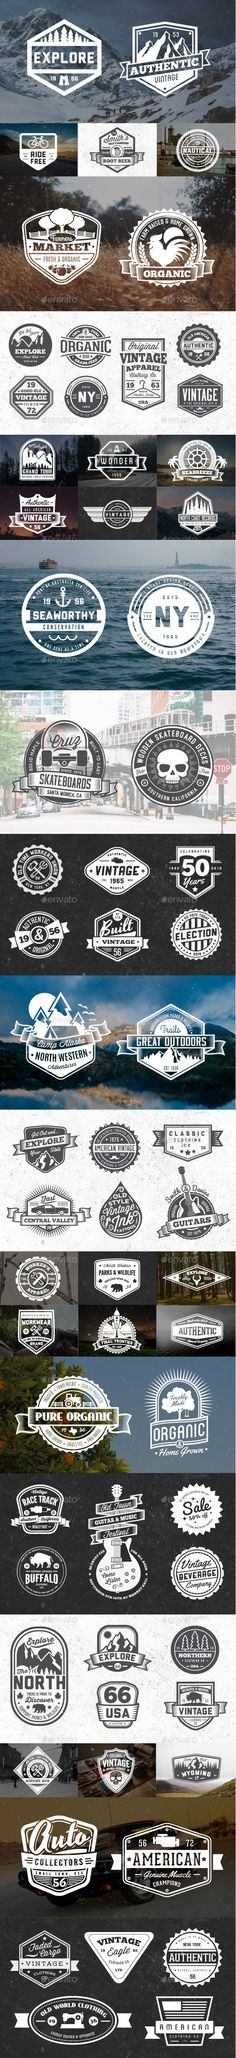 65 Vintage Badges and Logos Bundle - Badges & Stickers Web Elements